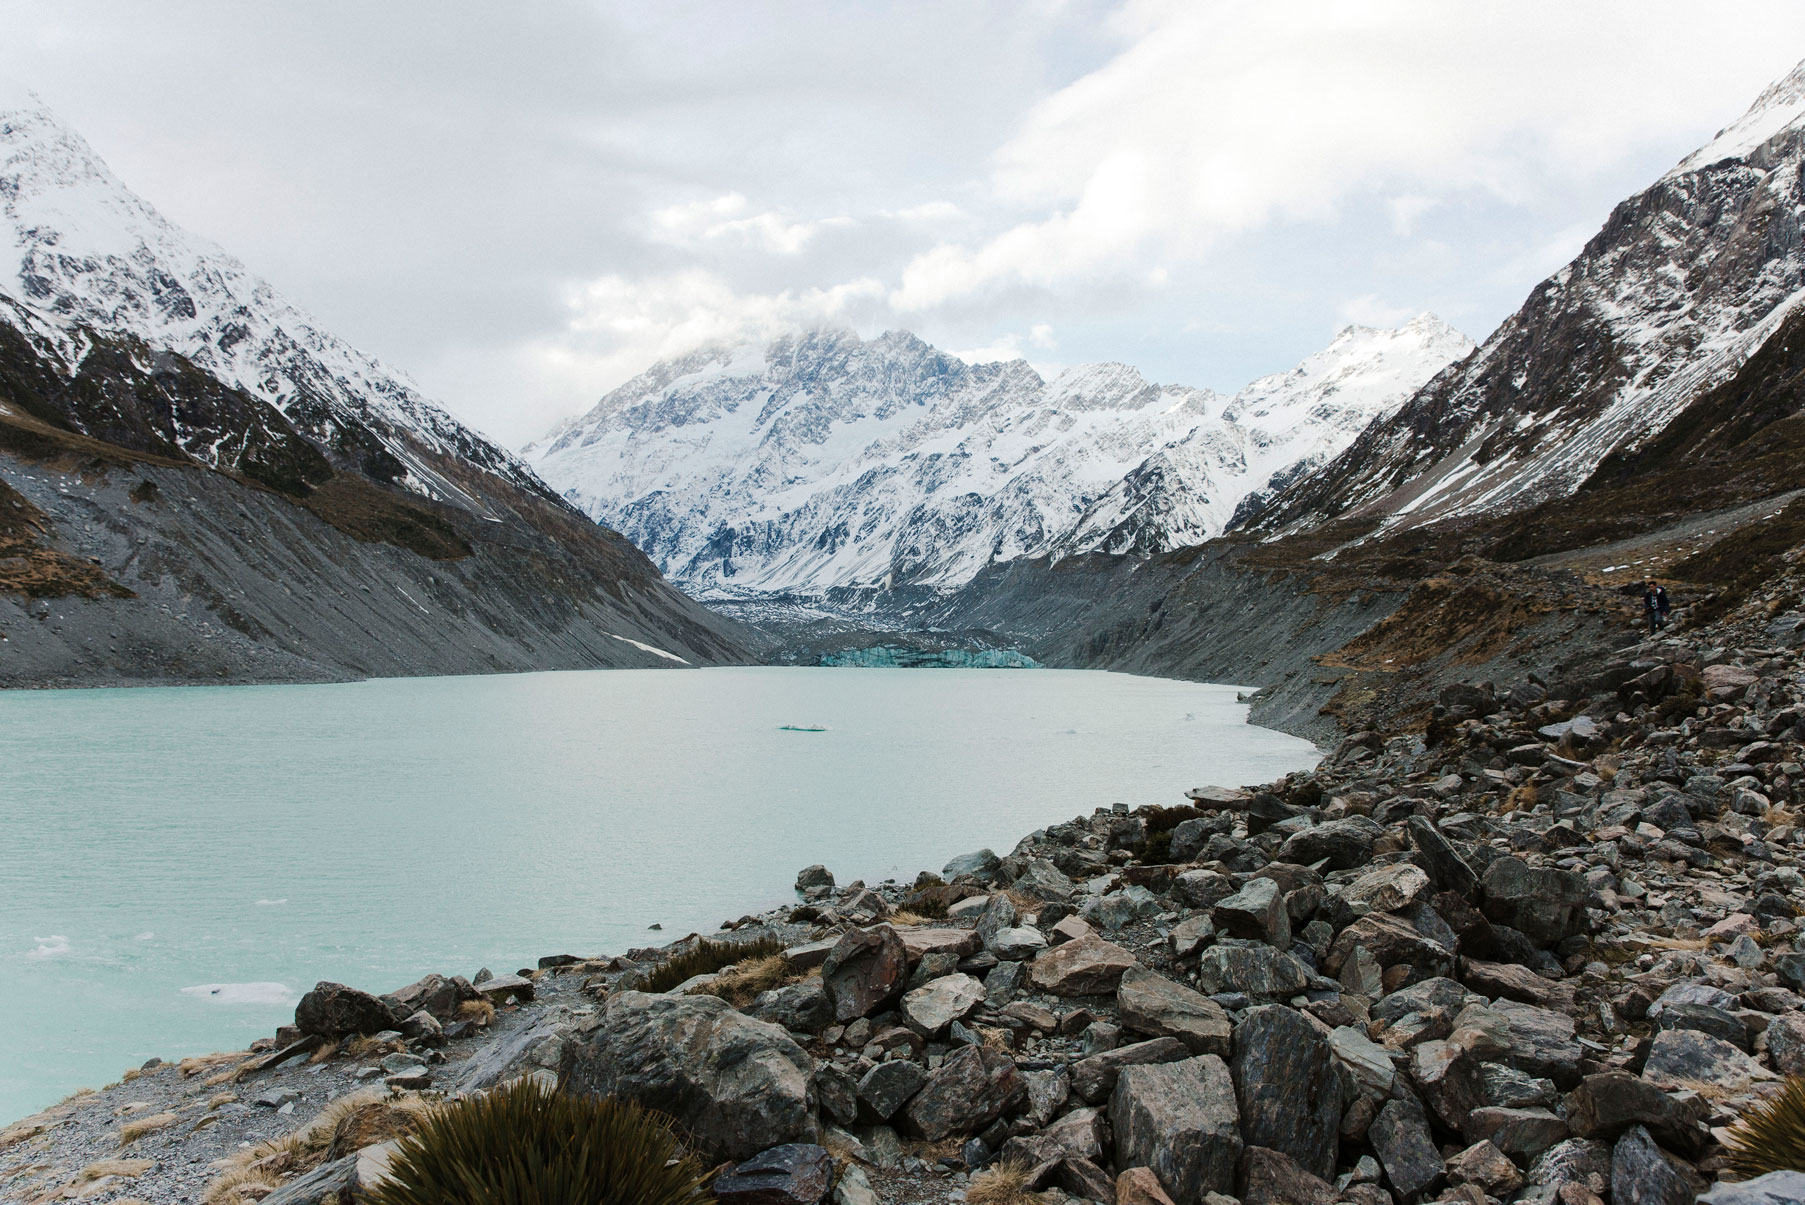 DSC_4310-MT-COOK-WEB.jpg